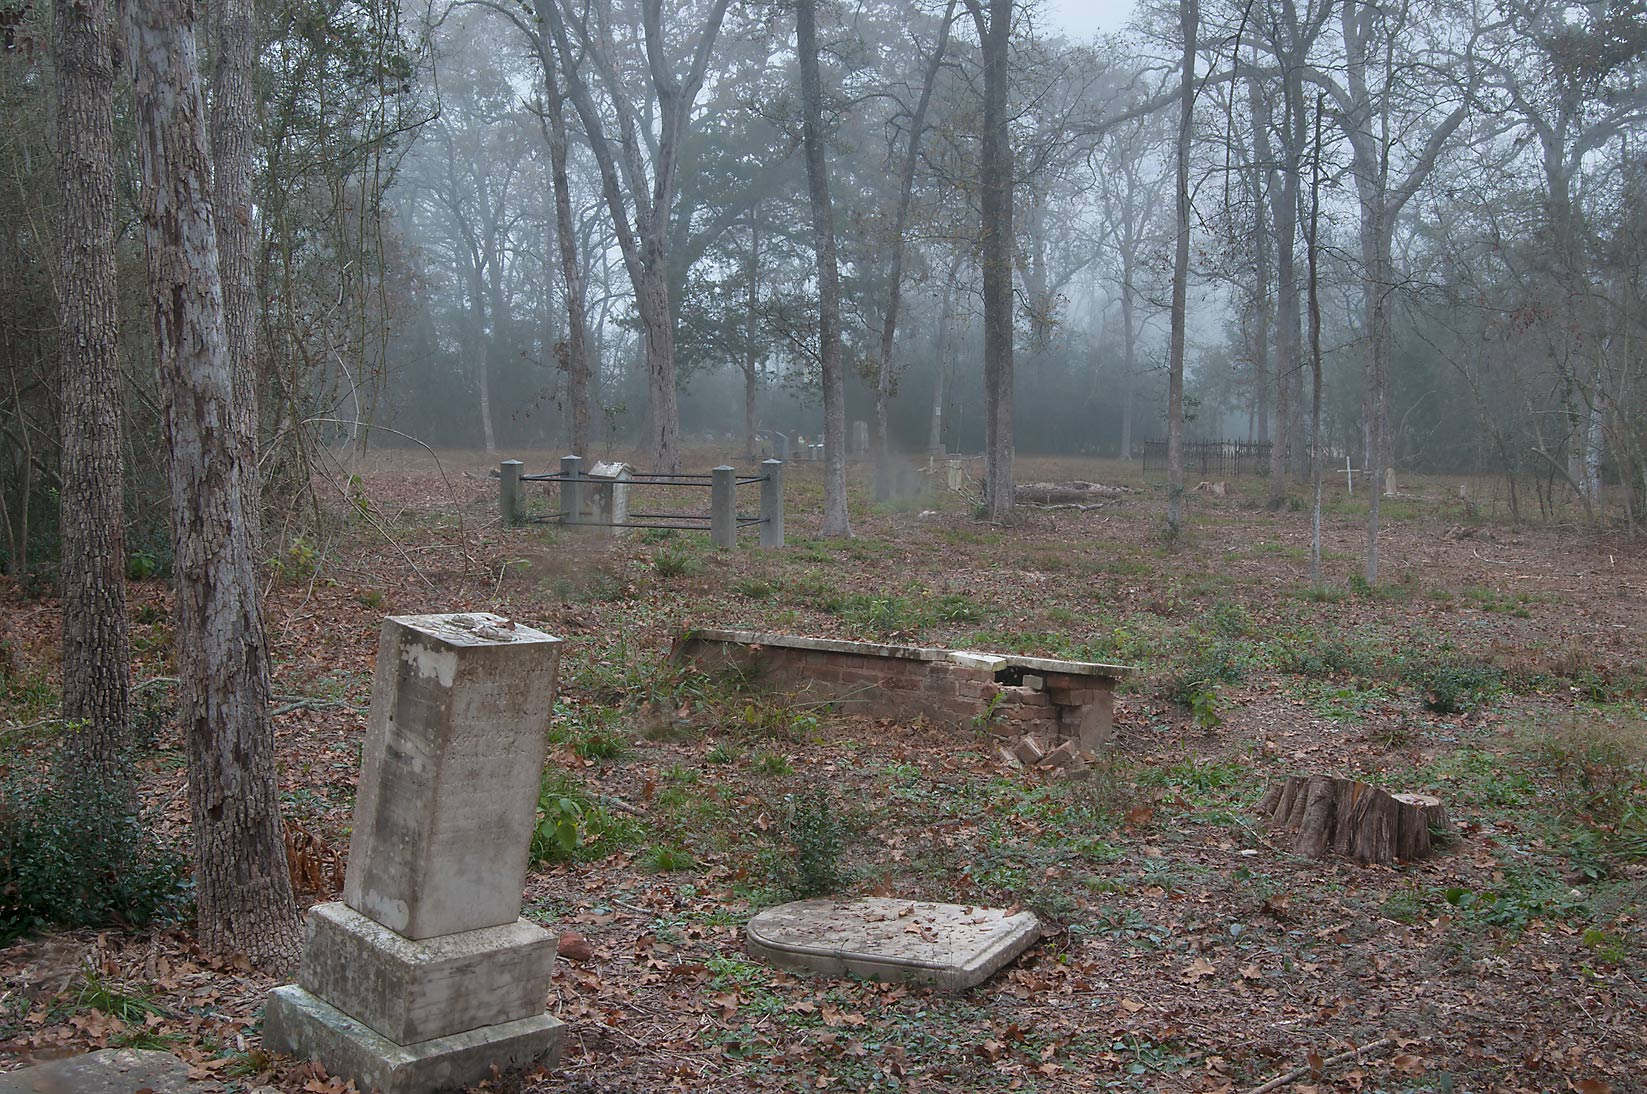 Tombs of Washington Cemetery in fog. Washington, Texas